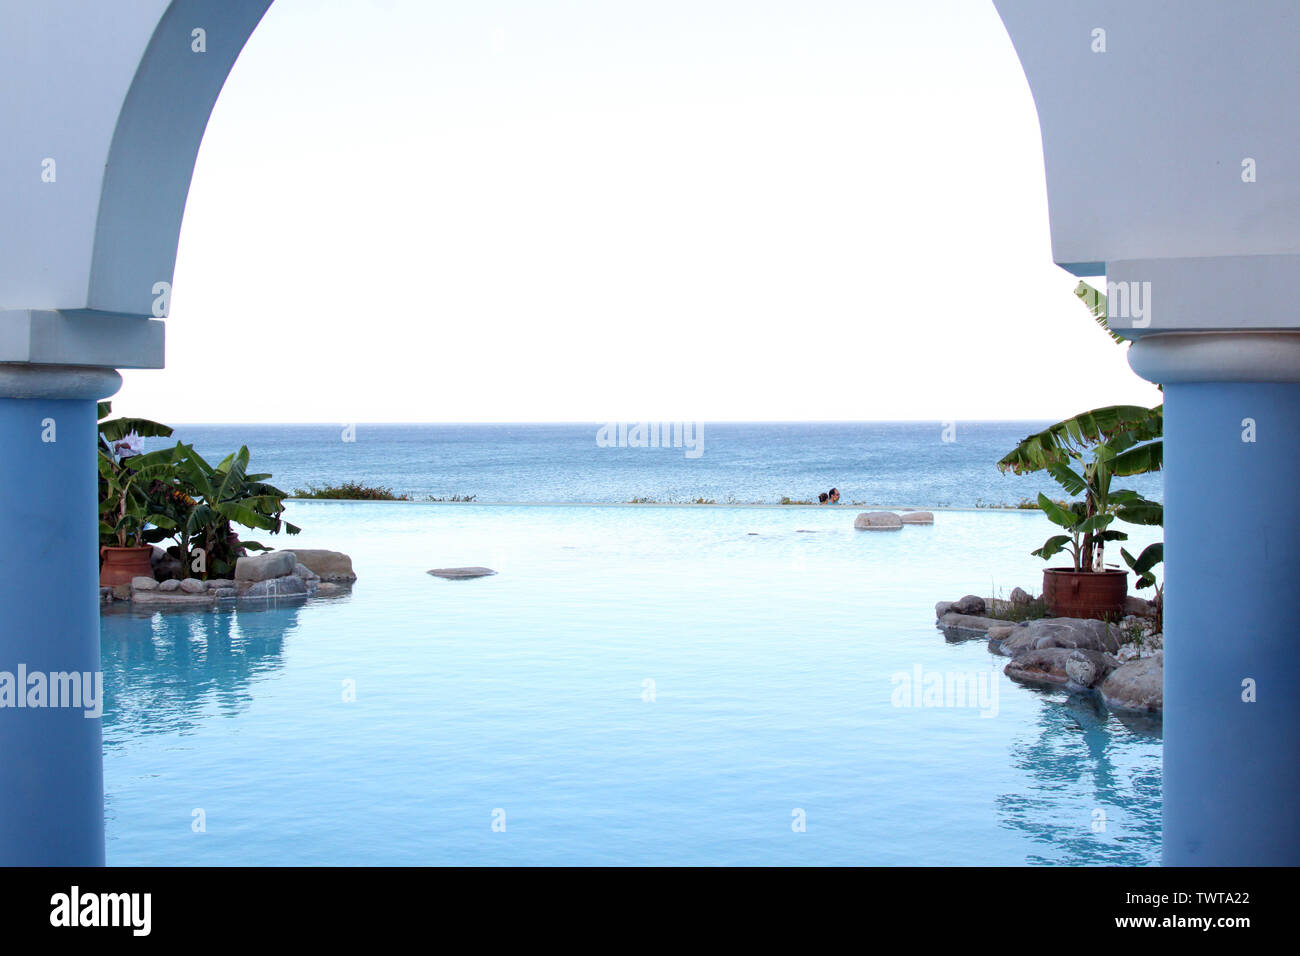 Rhodes, Greece - A view across hotel infinity pool with the sea in the background with blue white colour scheme, afternoon, framed with architecture - Stock Image